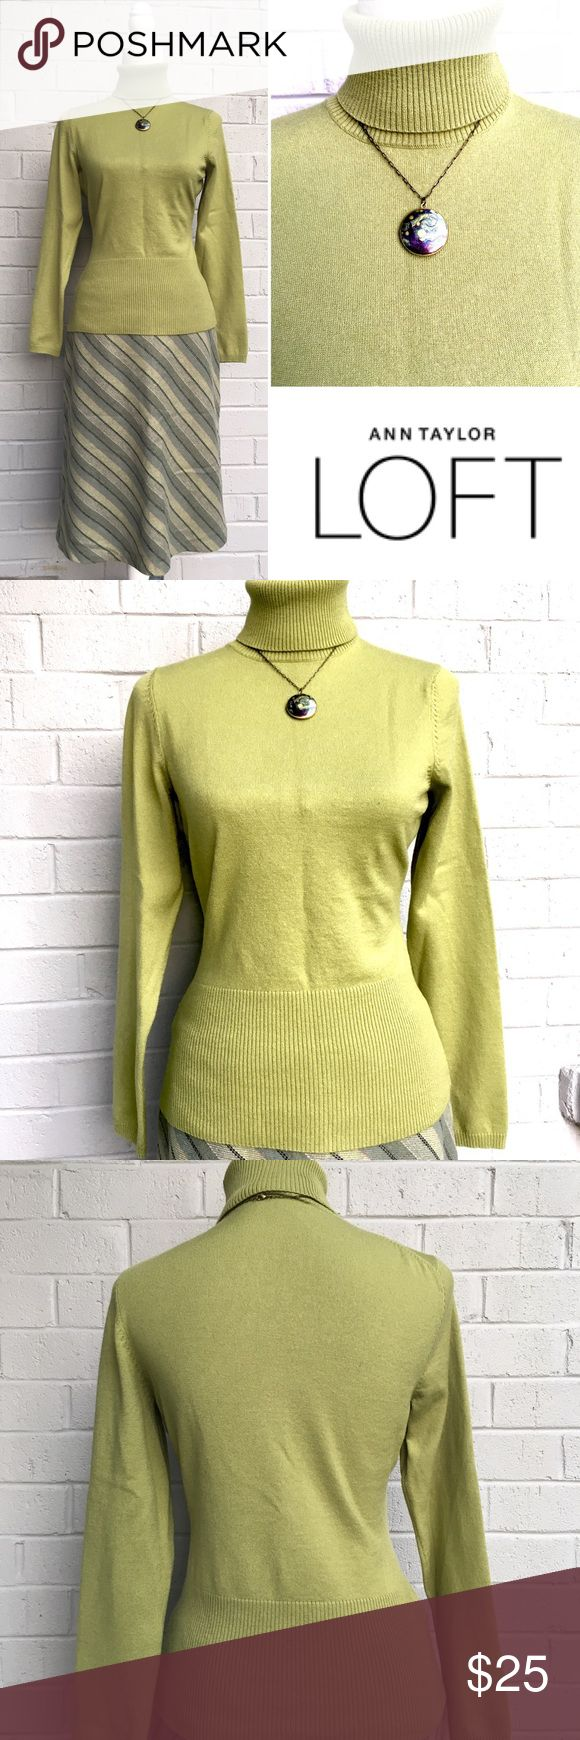 LOFT Olive Turtle Neck Wool Size M Gently used. In excellent condition. No signs of wear.  True to size M. Olive green. I love this color! Material is wool nylon mix. Pls see tags on the photos for material details. The mannequin the sweater is on is size S/M. Please feel free to ask if you have any more questions. Comes form a clean, smoke free home. I also posted the gap wool skirt, and the necklace. If you are size 8 on the bottom get the full outfit and save $$. LOFT Sweaters Cowl…